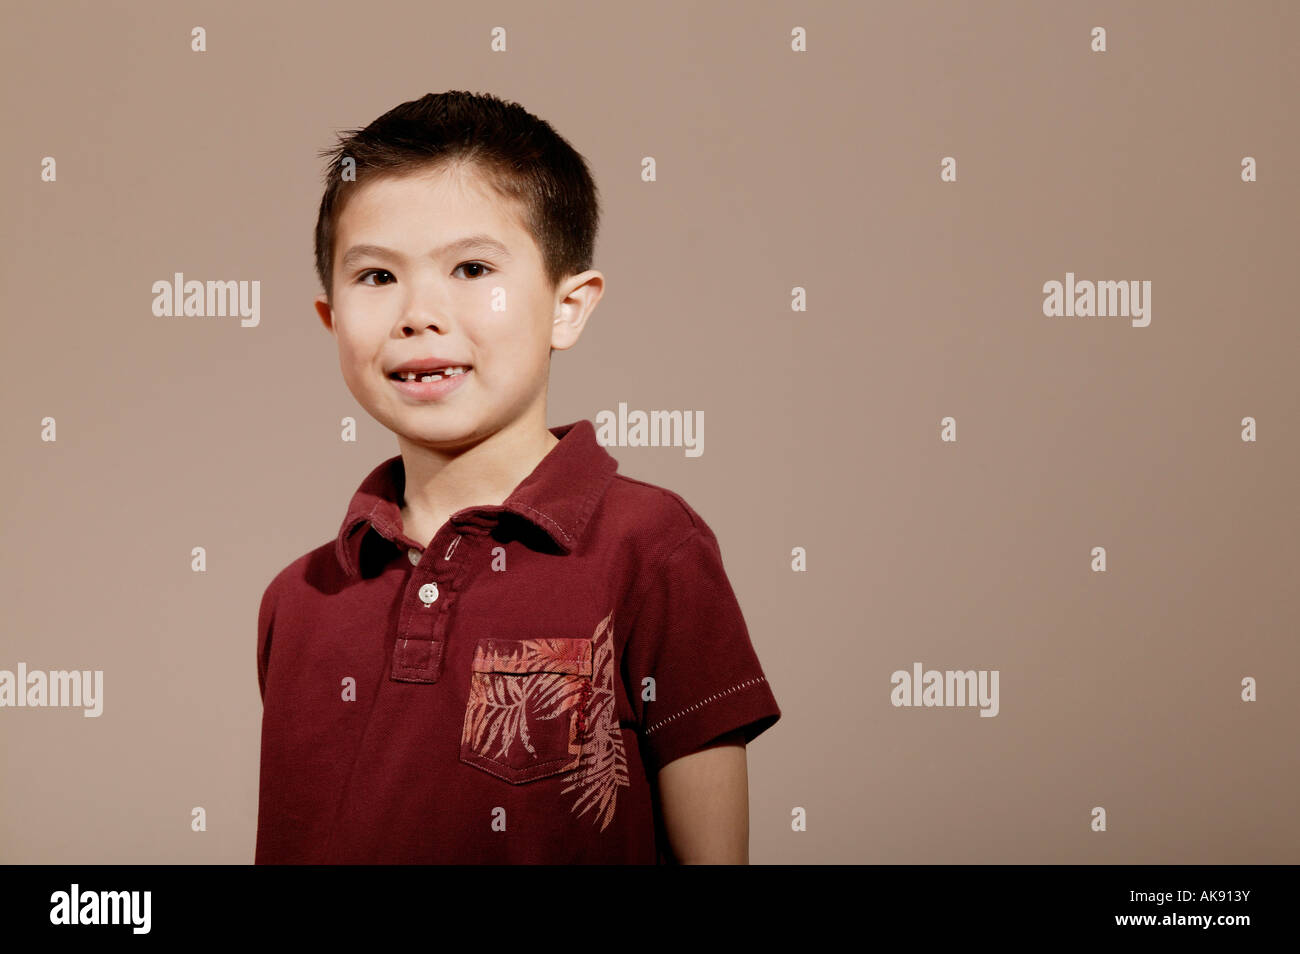 Little boy smiling and posed wearing red shirt - Stock Image